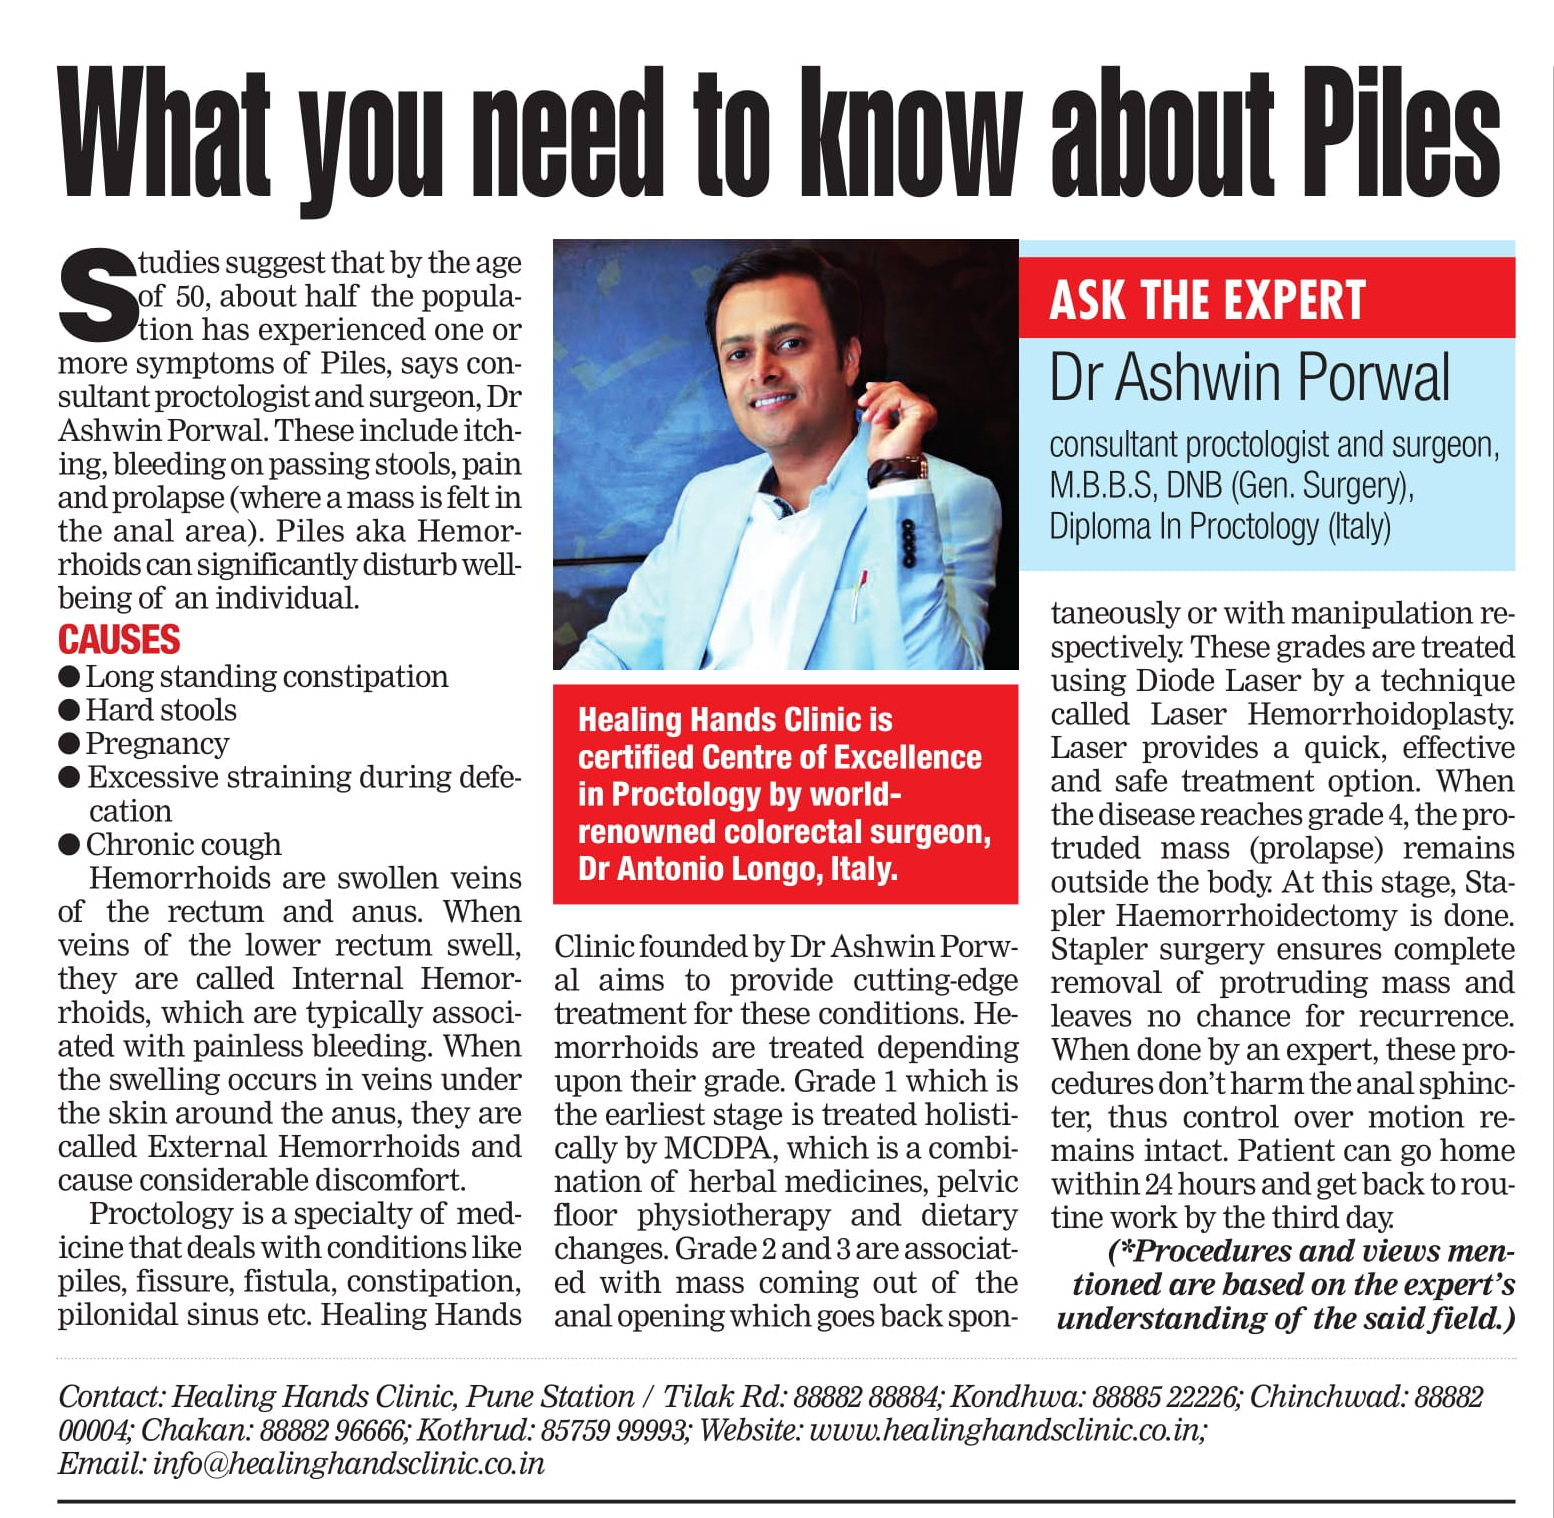 About Piles